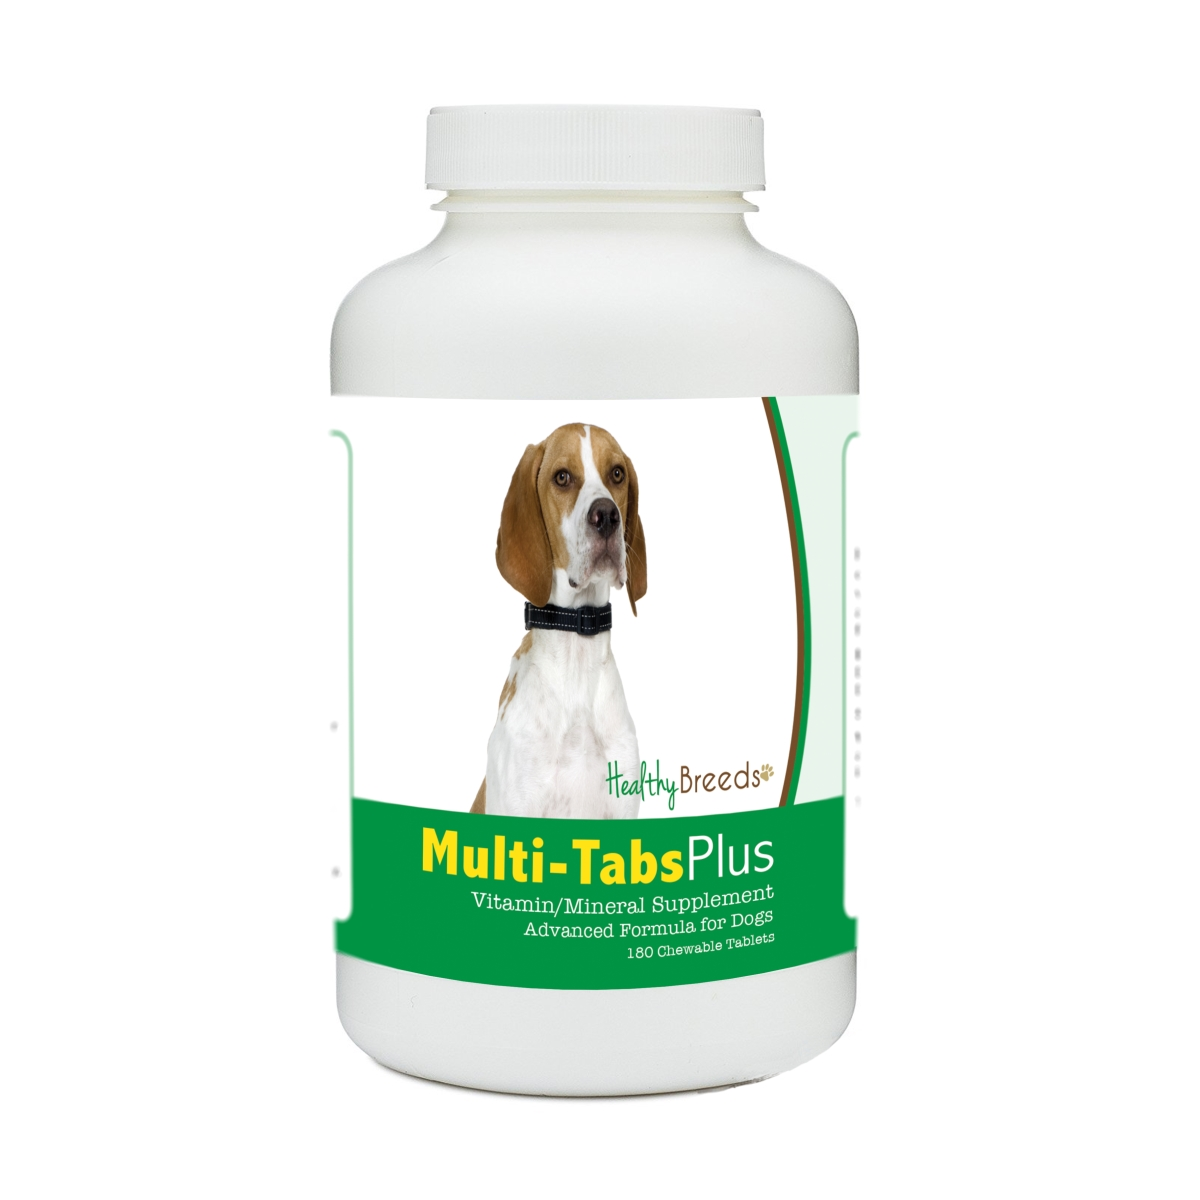 Healthy Breeds 840235177098 English Pointer Multi-Tabs Plus Chewable Tablets - 180 Count